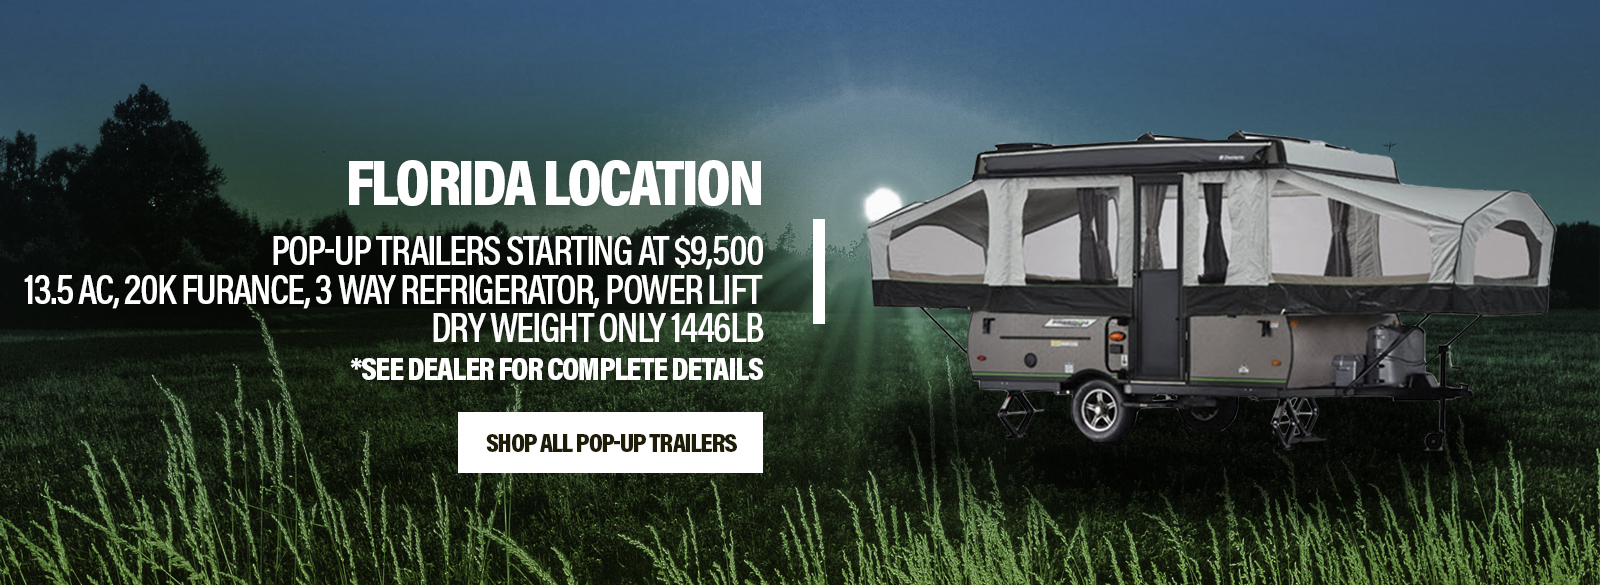 TriAmRV_FloridaLocationPopUps_HomepageBanner_June19.jpg